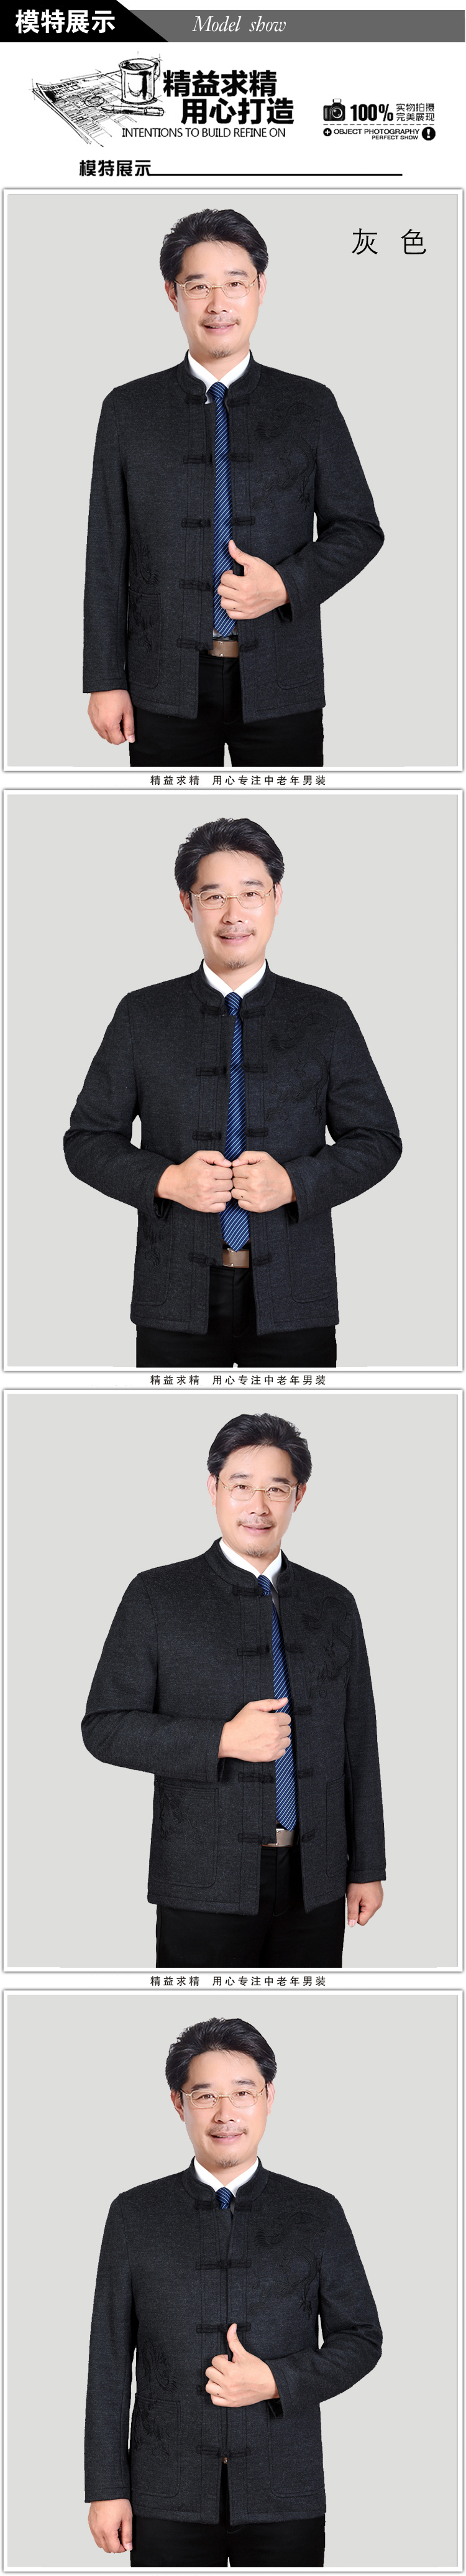 WAEOLSA Chinese Men Oriental Tunic Jackets Wool Blends Tangzhuang Coats Man Dragon Embroidery Tweed Suit Coat (4)